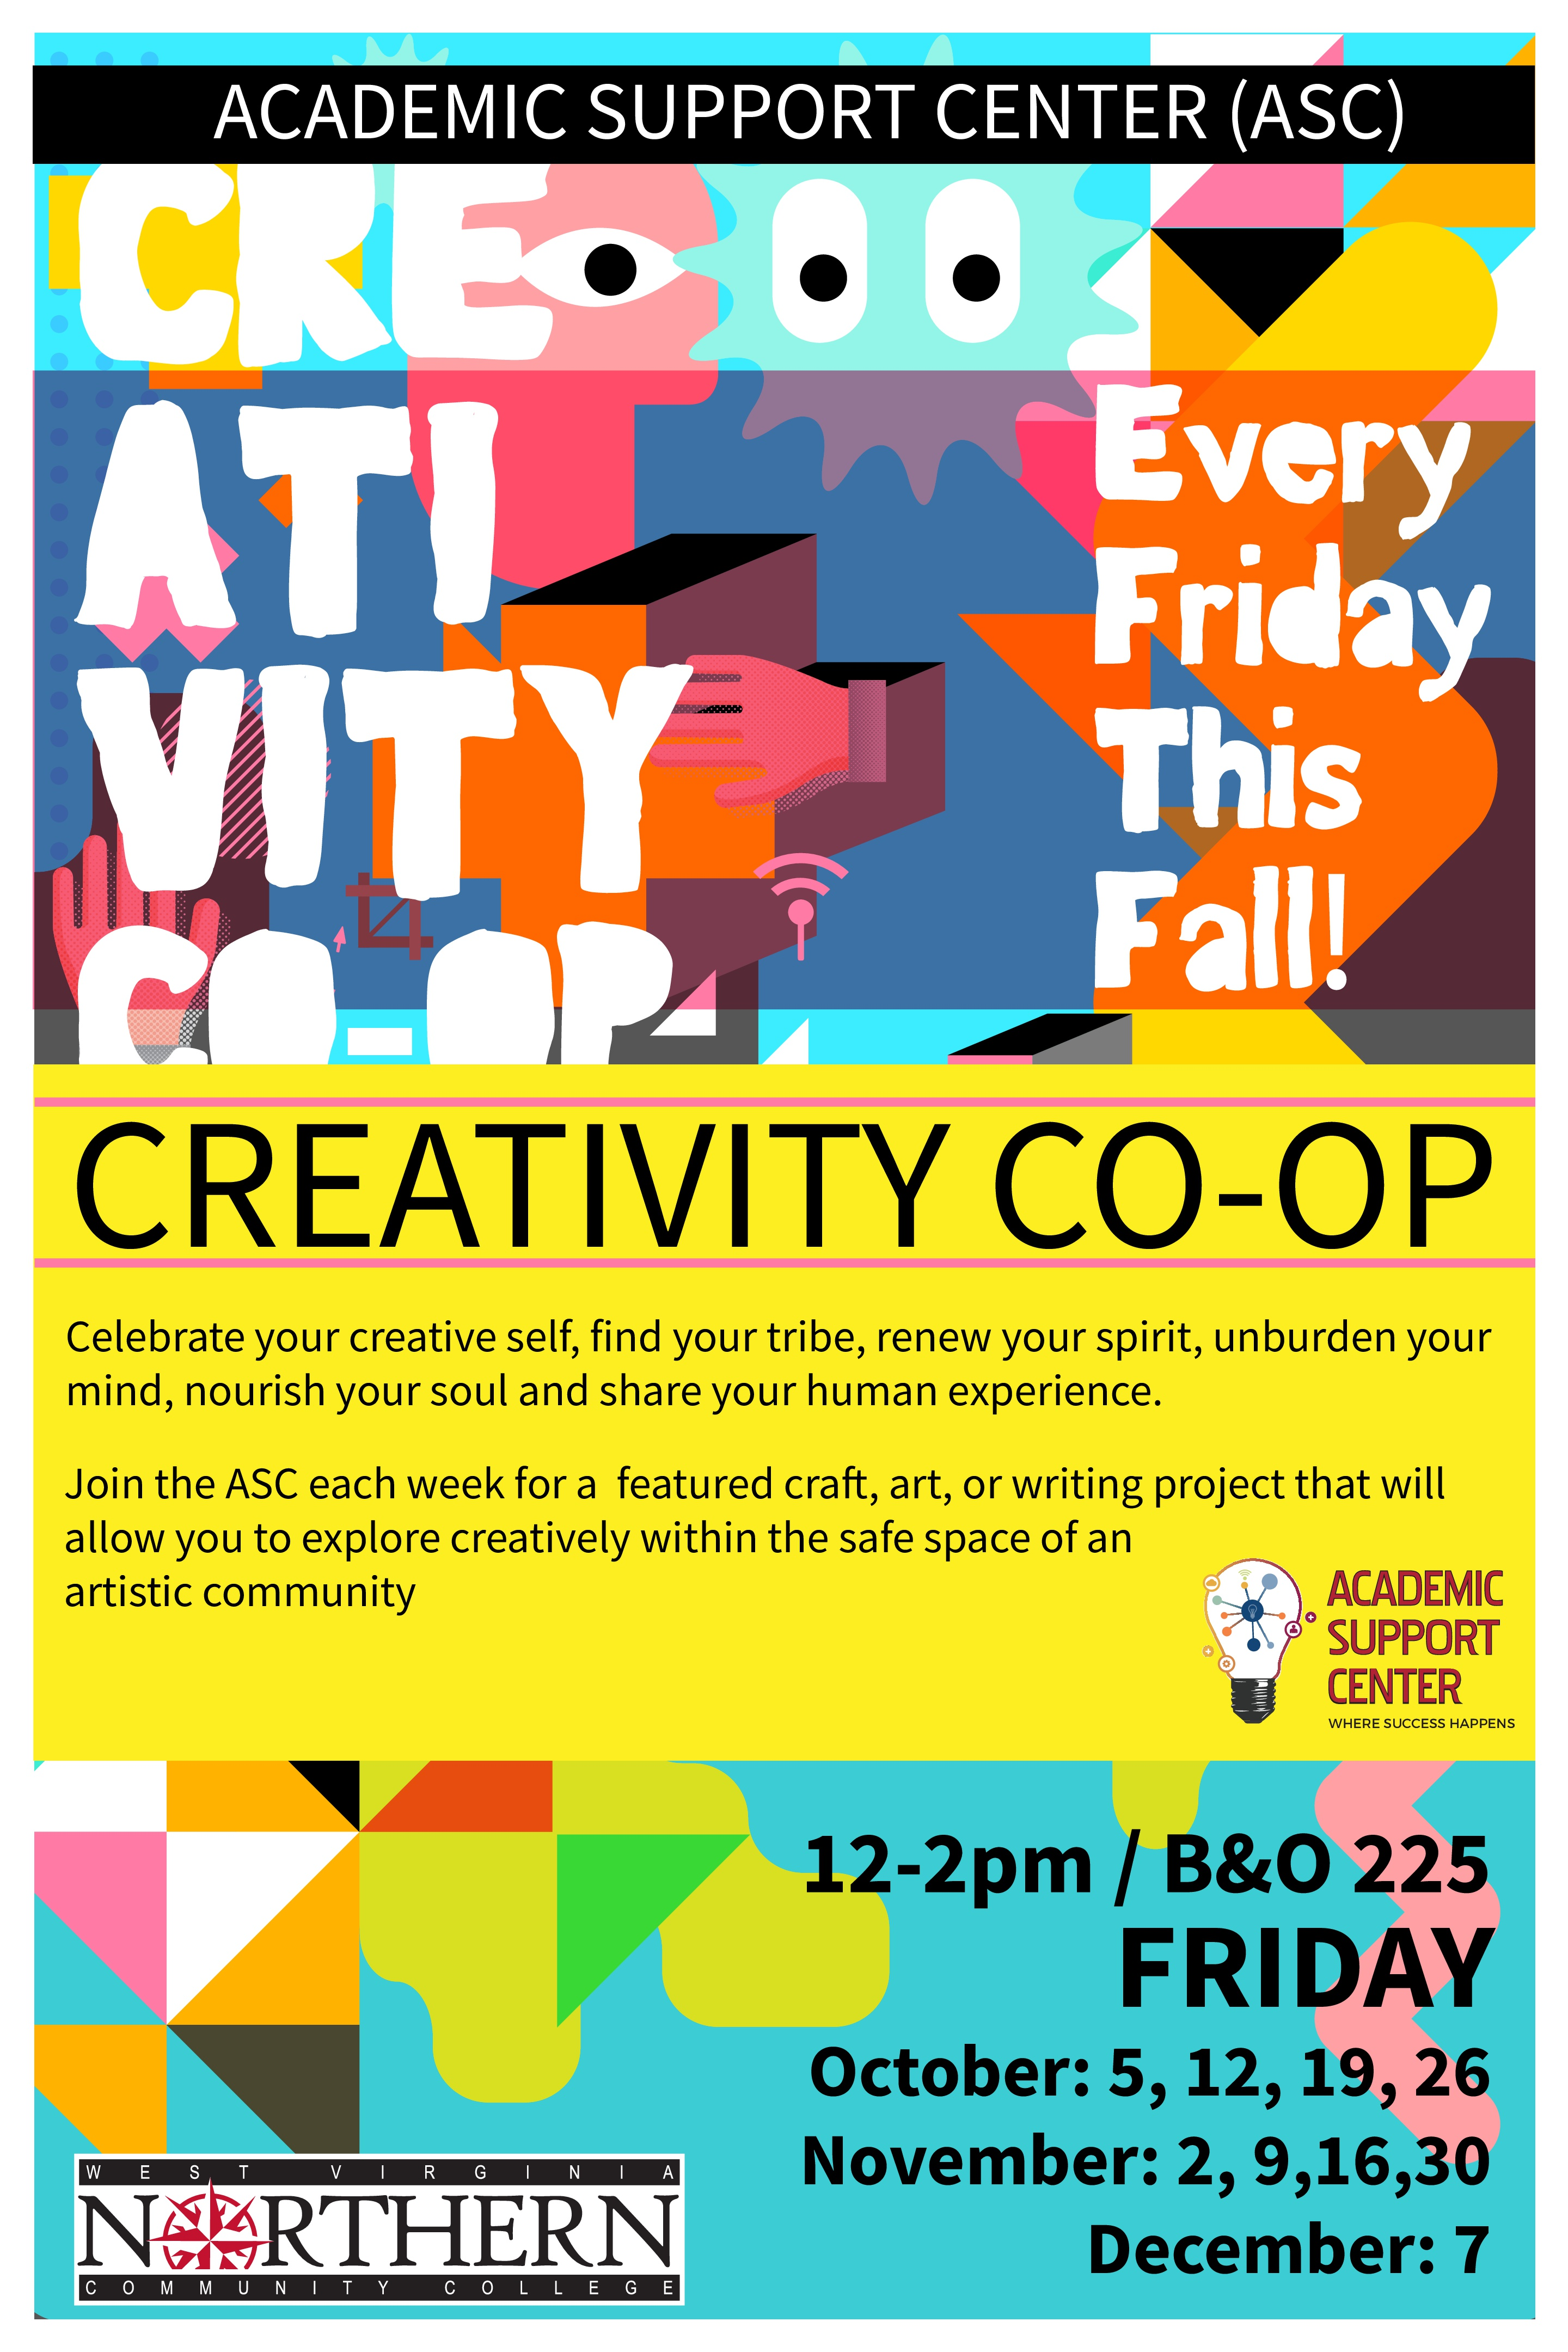 Creativity Co-op